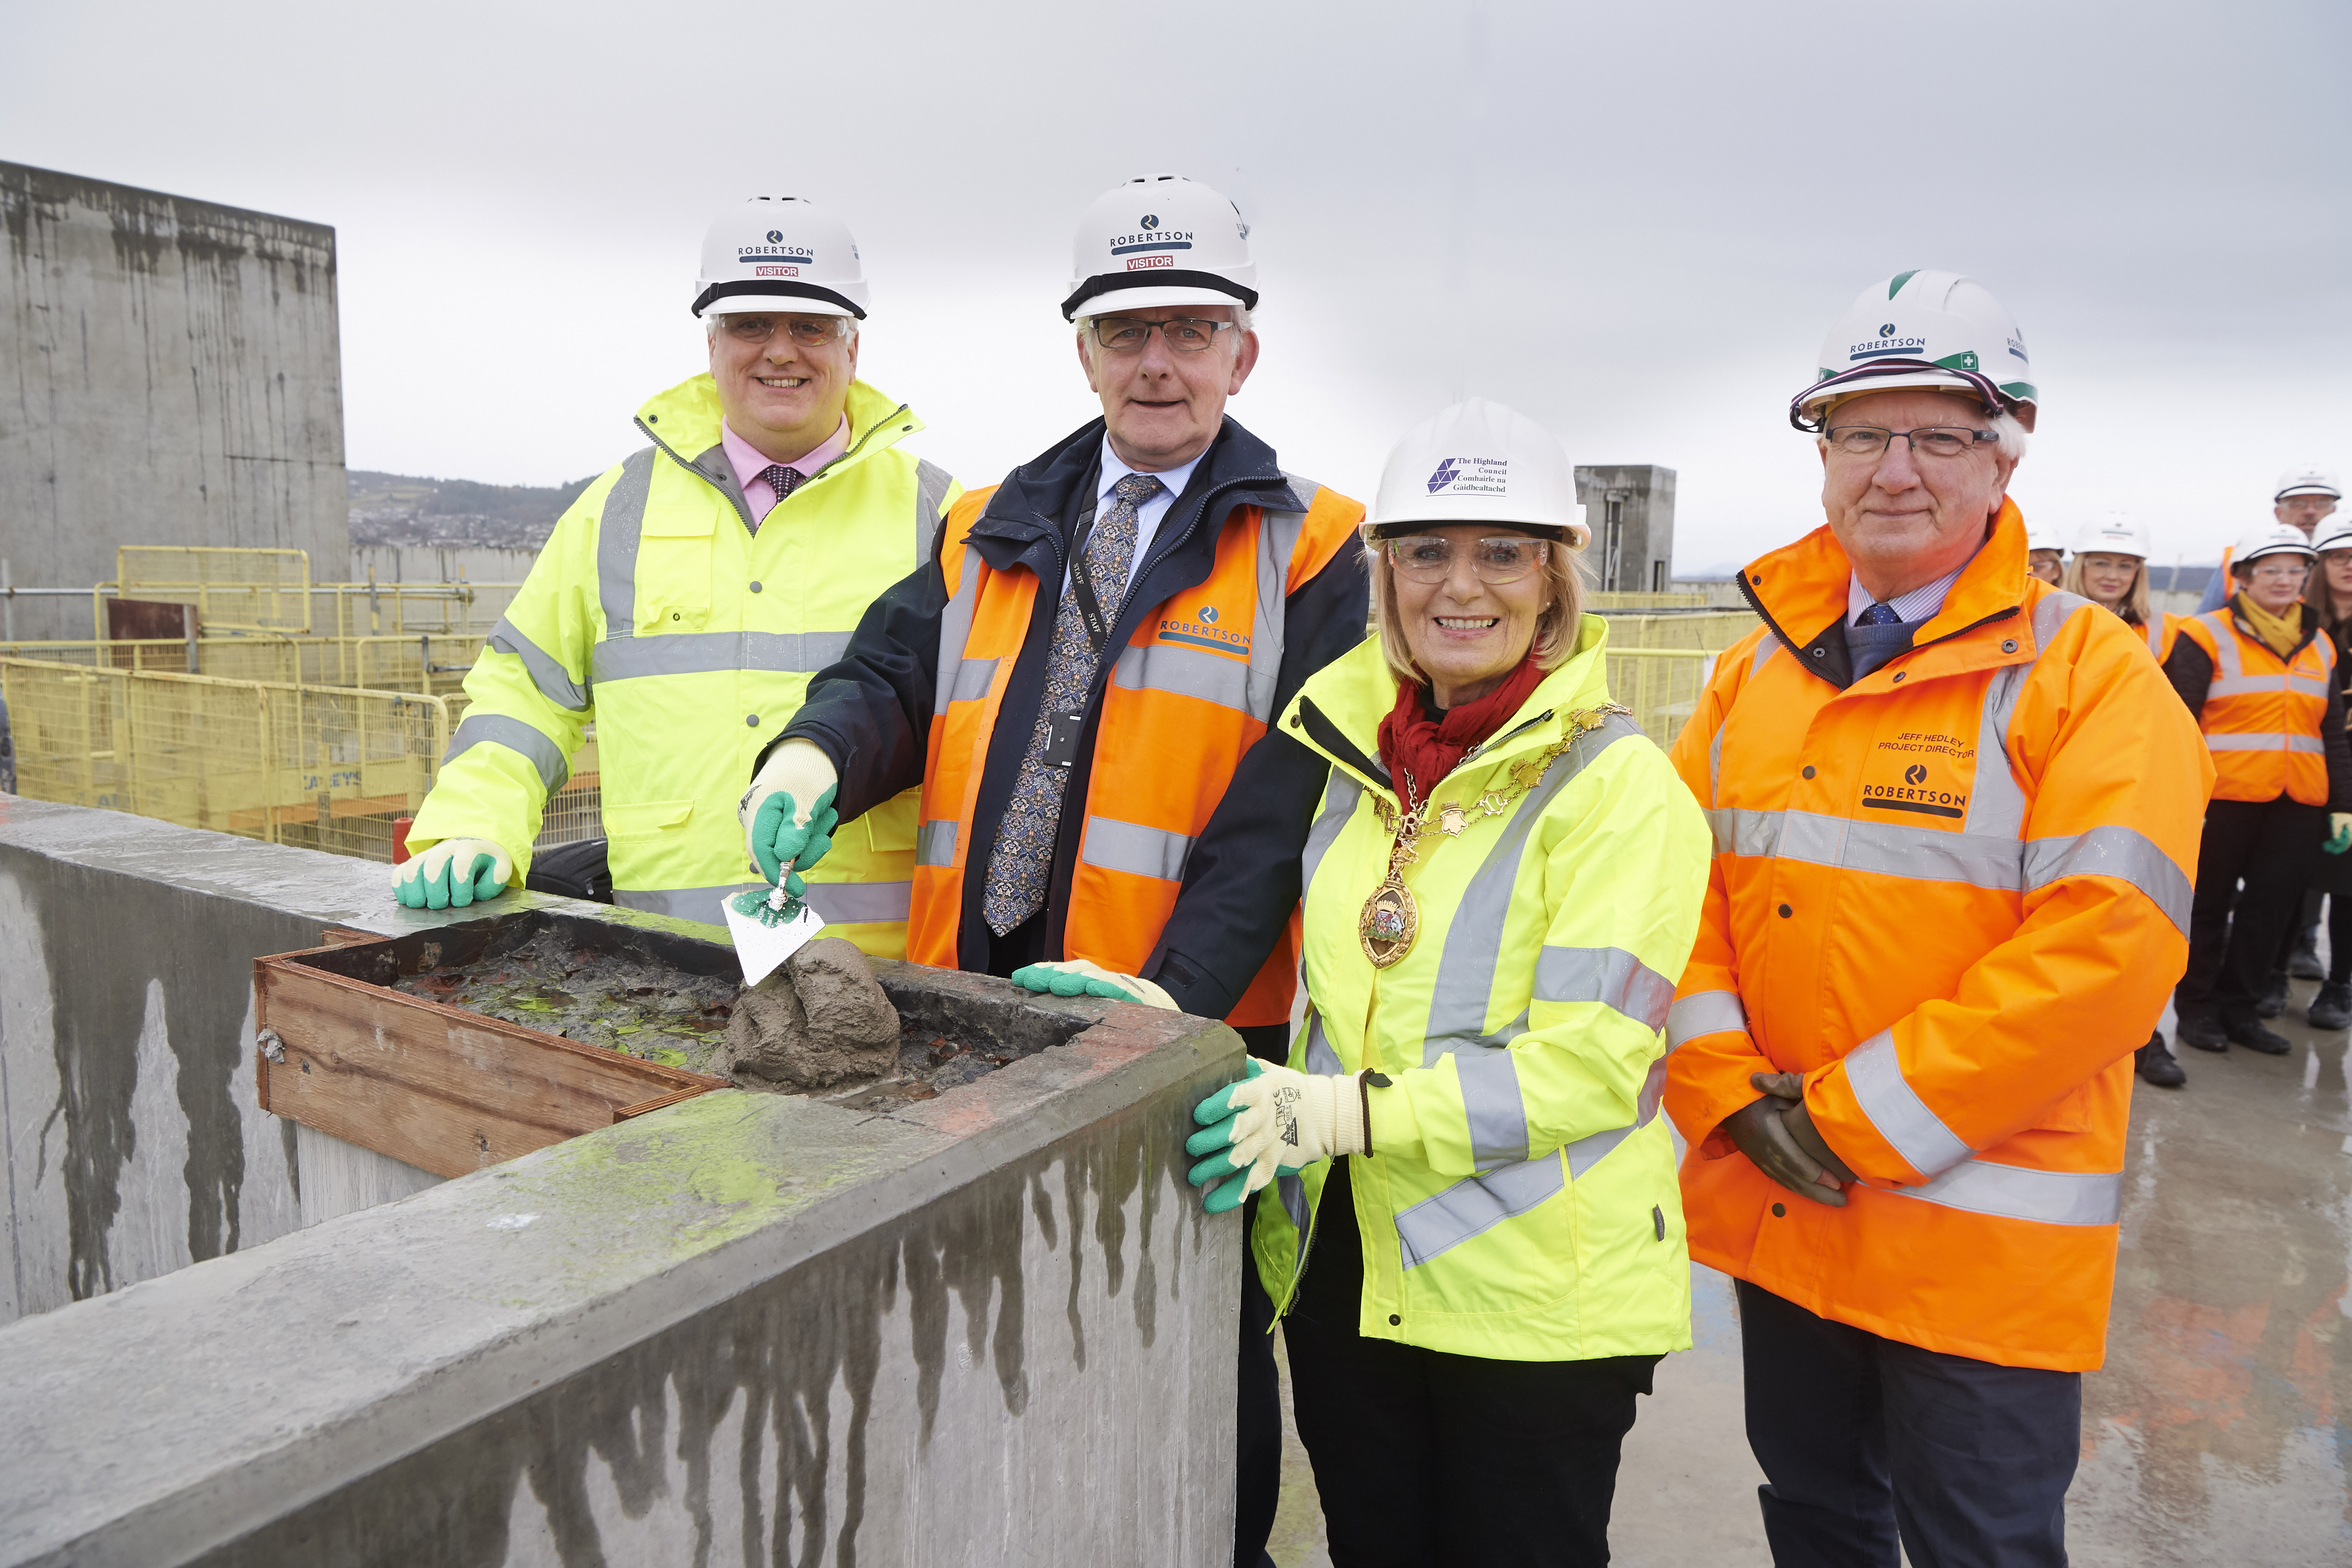 Provost Carmichael at the topping out ceremony